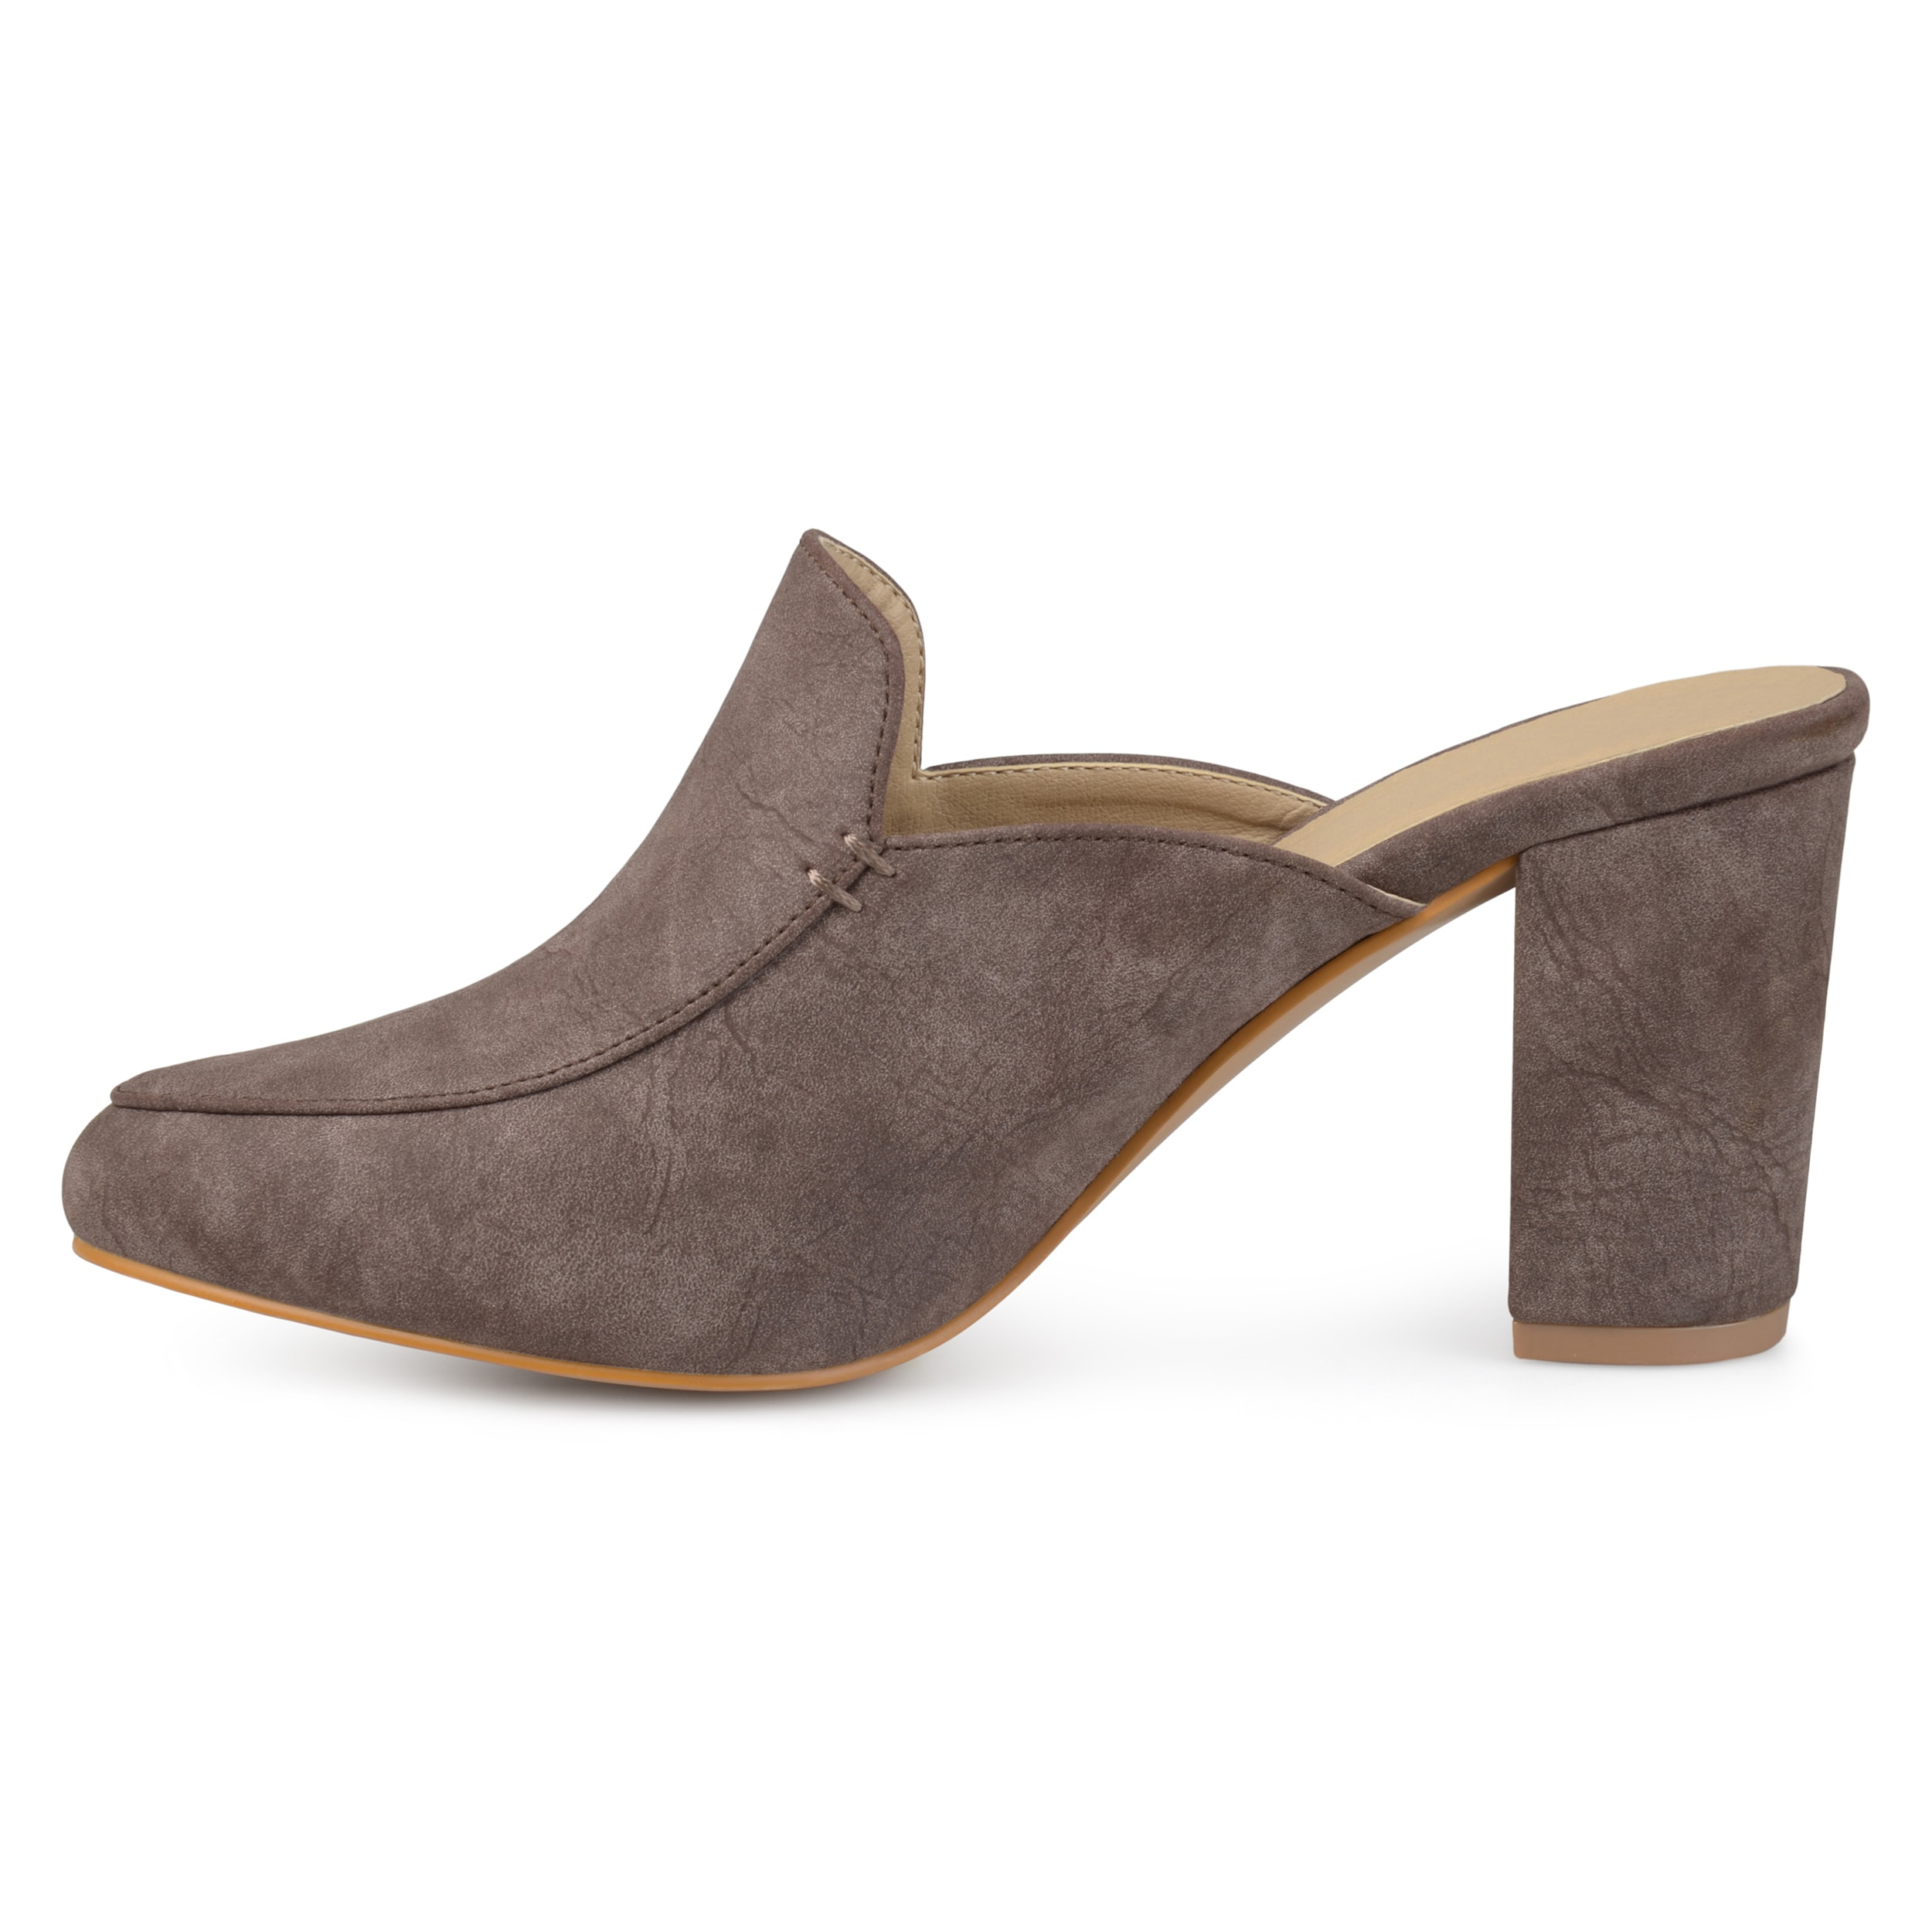 5dc58f56fe5 Shop Journee Collection Women s  Trove  Block Heel Loafer Mules - On Sale -  Free Shipping On Orders Over  45 - Overstock - 17611345